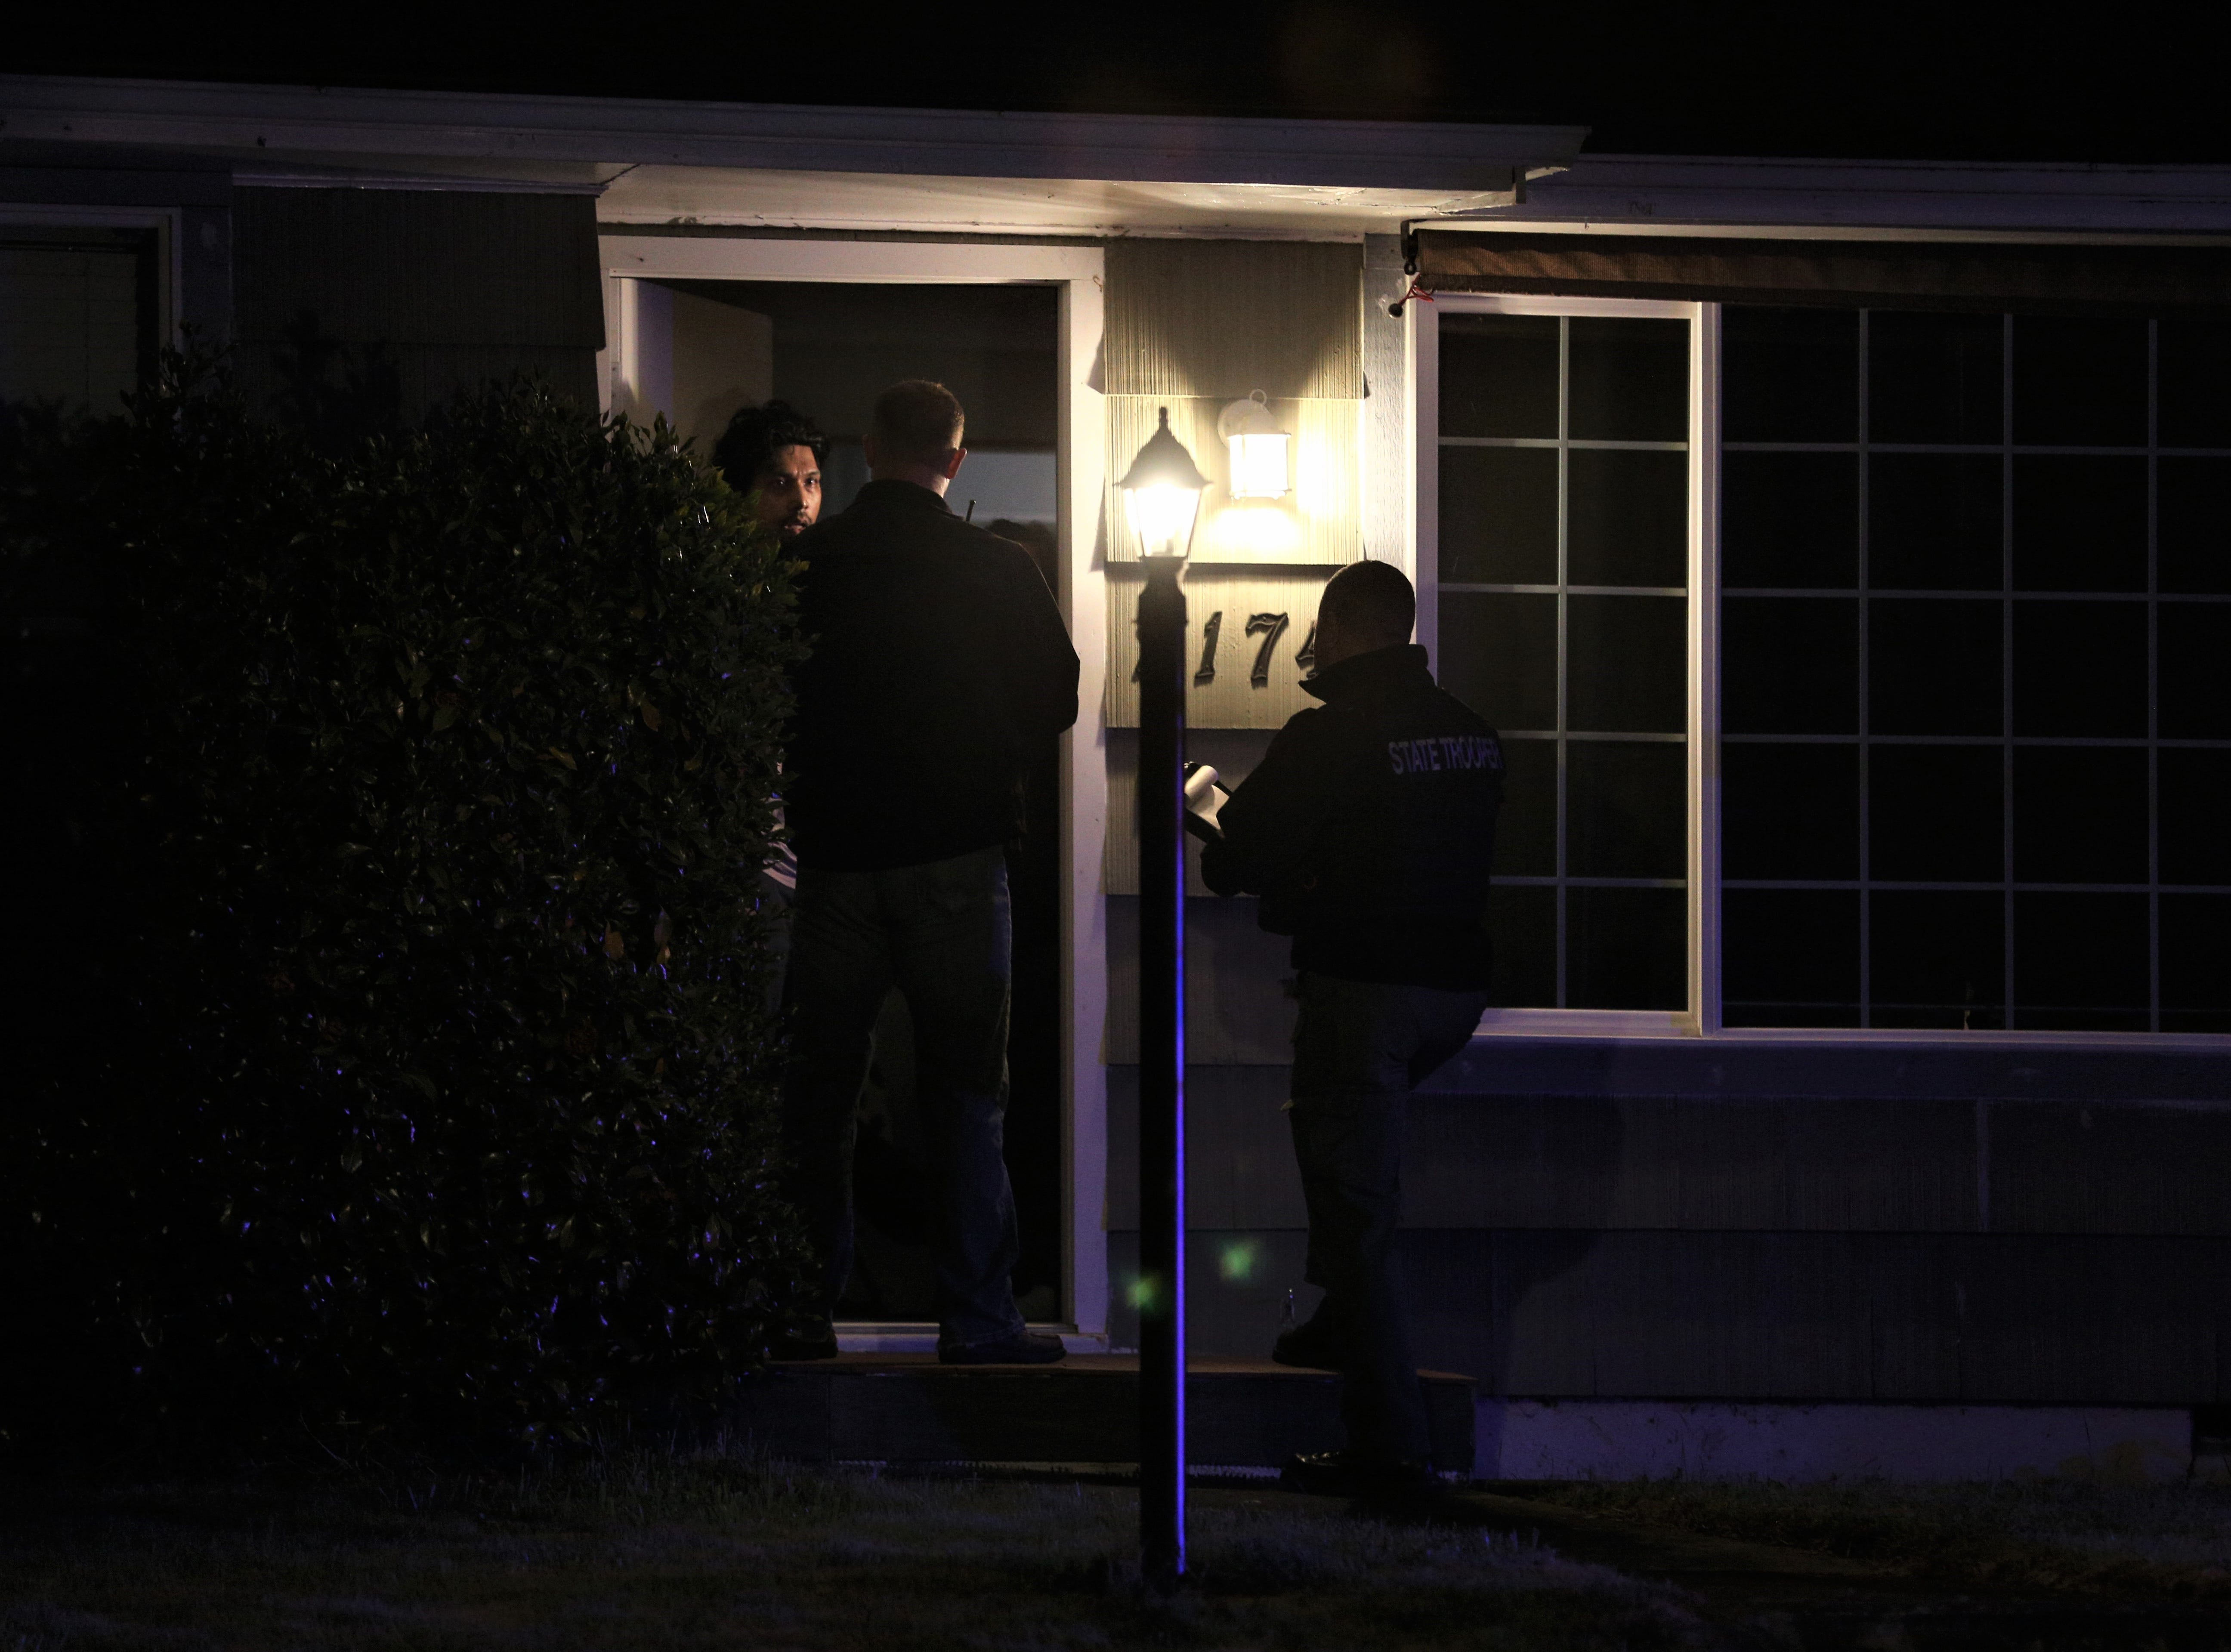 Law enforcement officials knock on doors near Highland Elementary School where a Salem Police officer was shot in Salem on May 14, 2019.